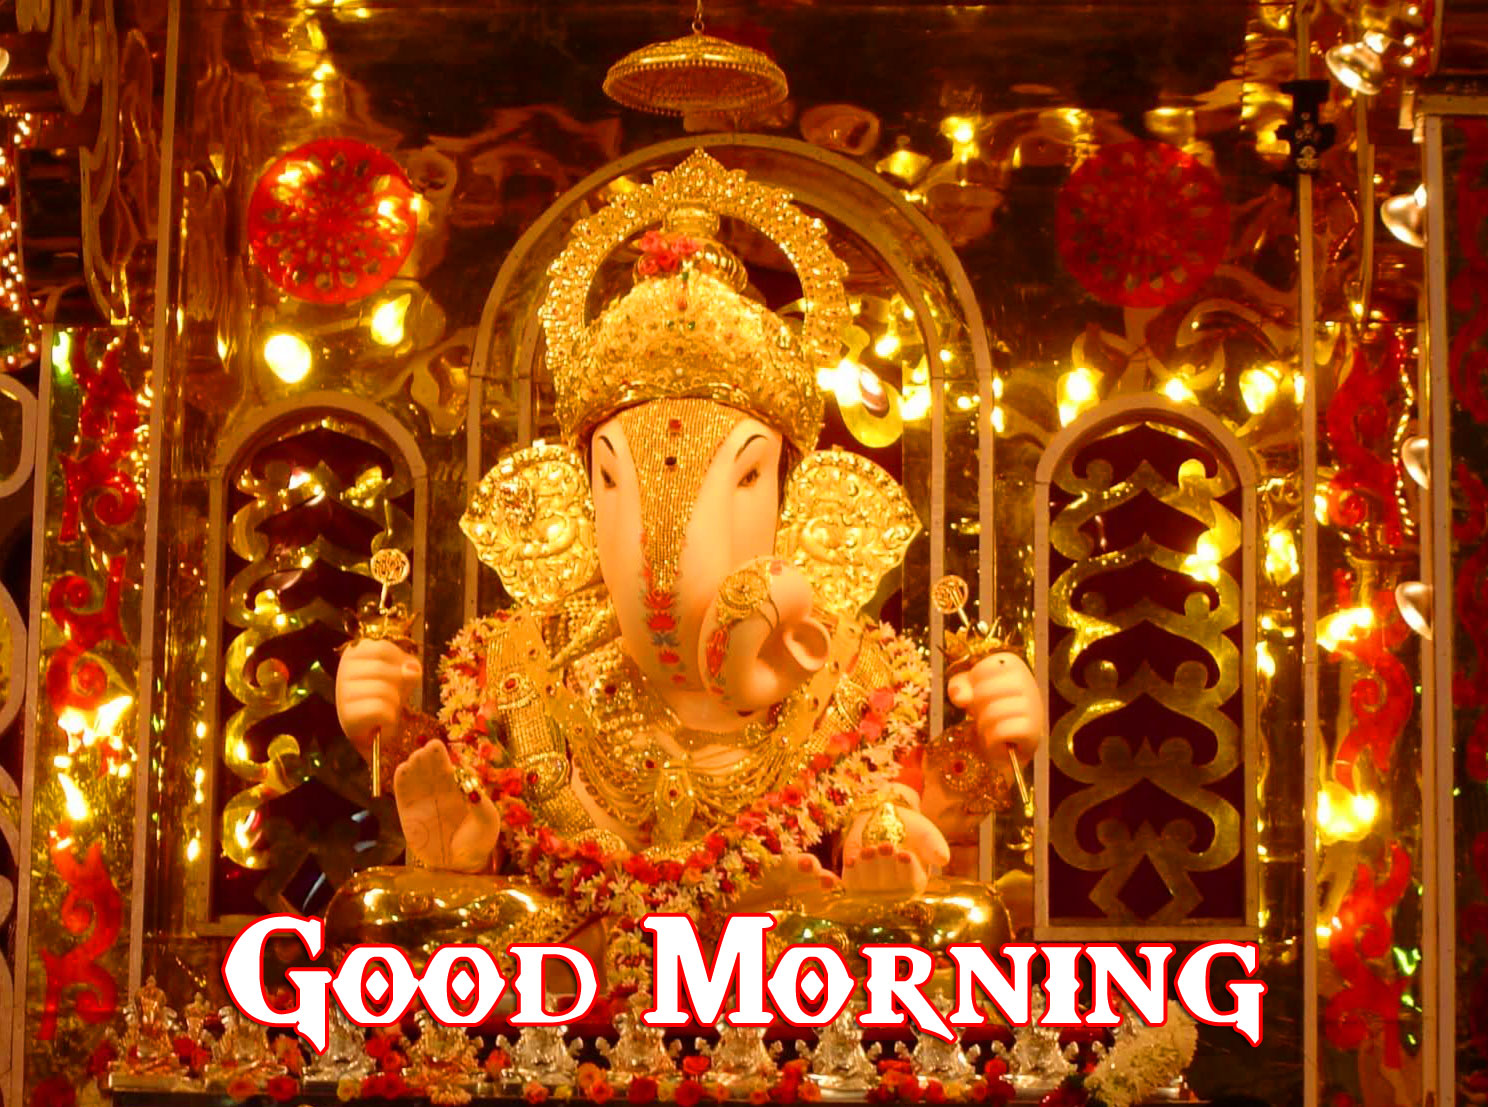 Lord Ganesha Good Morning Pics Download new